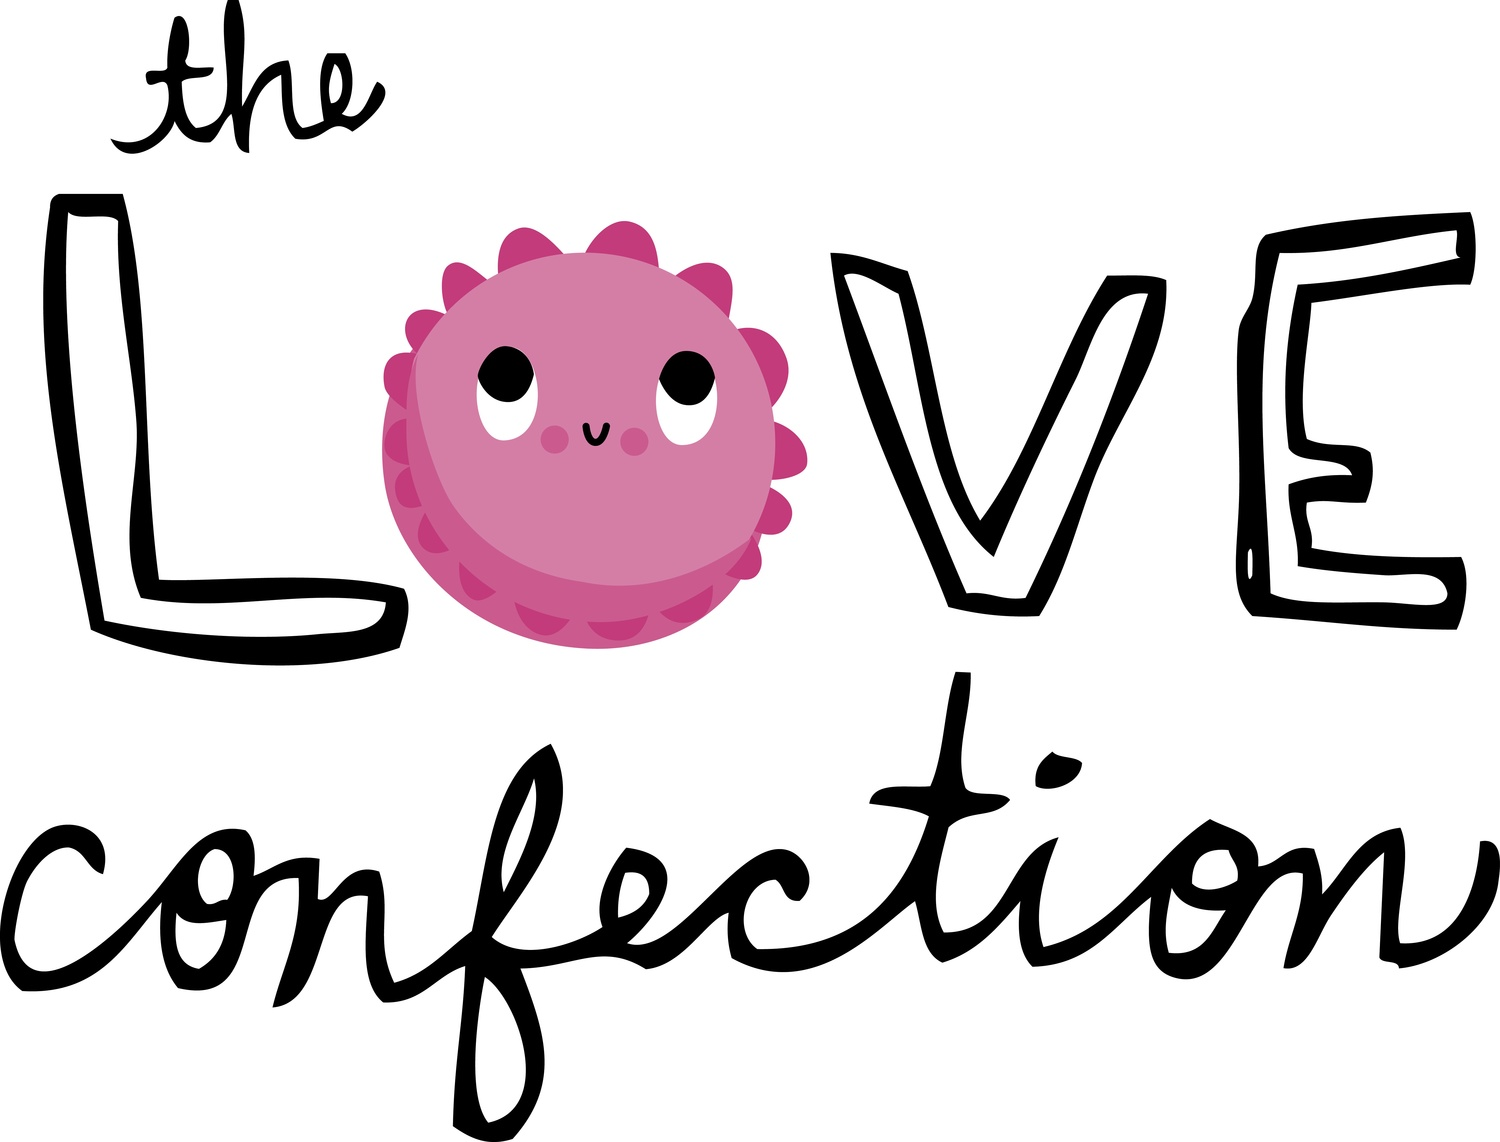 The Love Confection